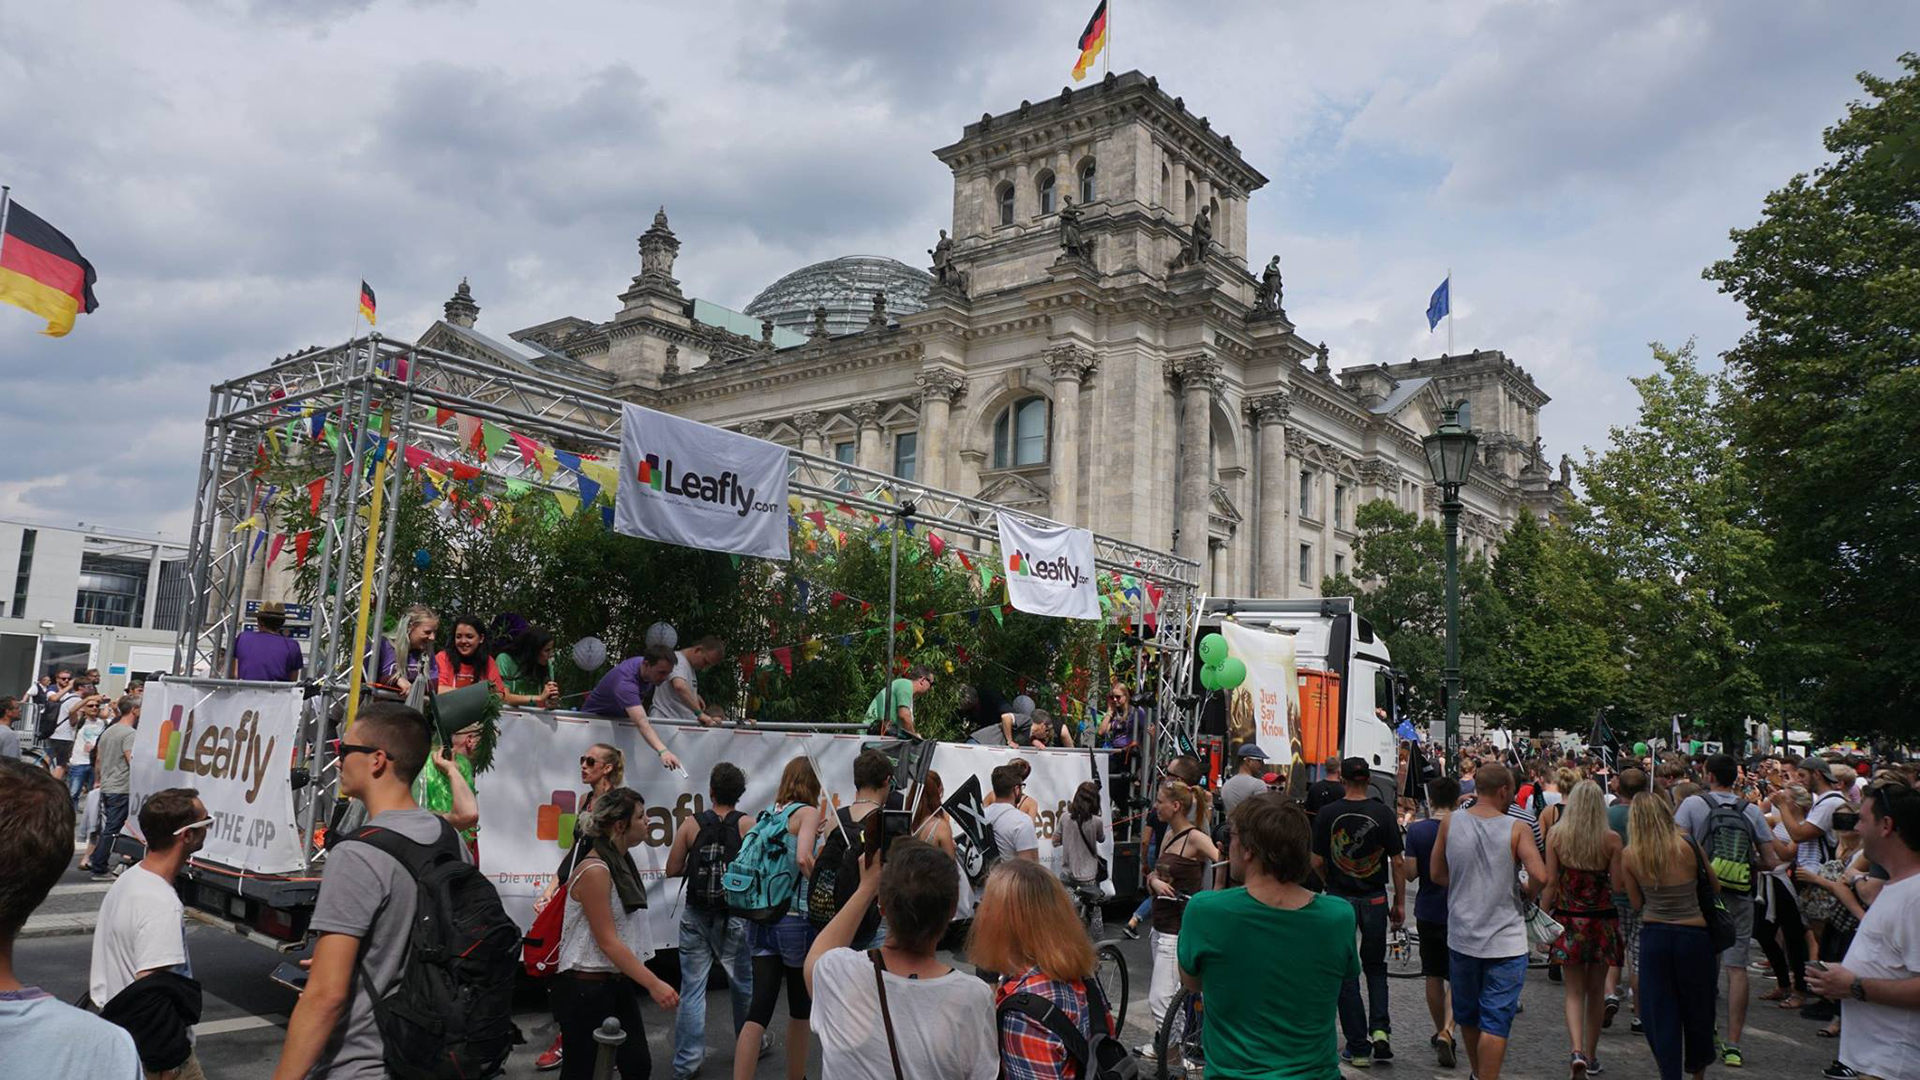 Leafly float at Berlin's 20th annual Hanfparade